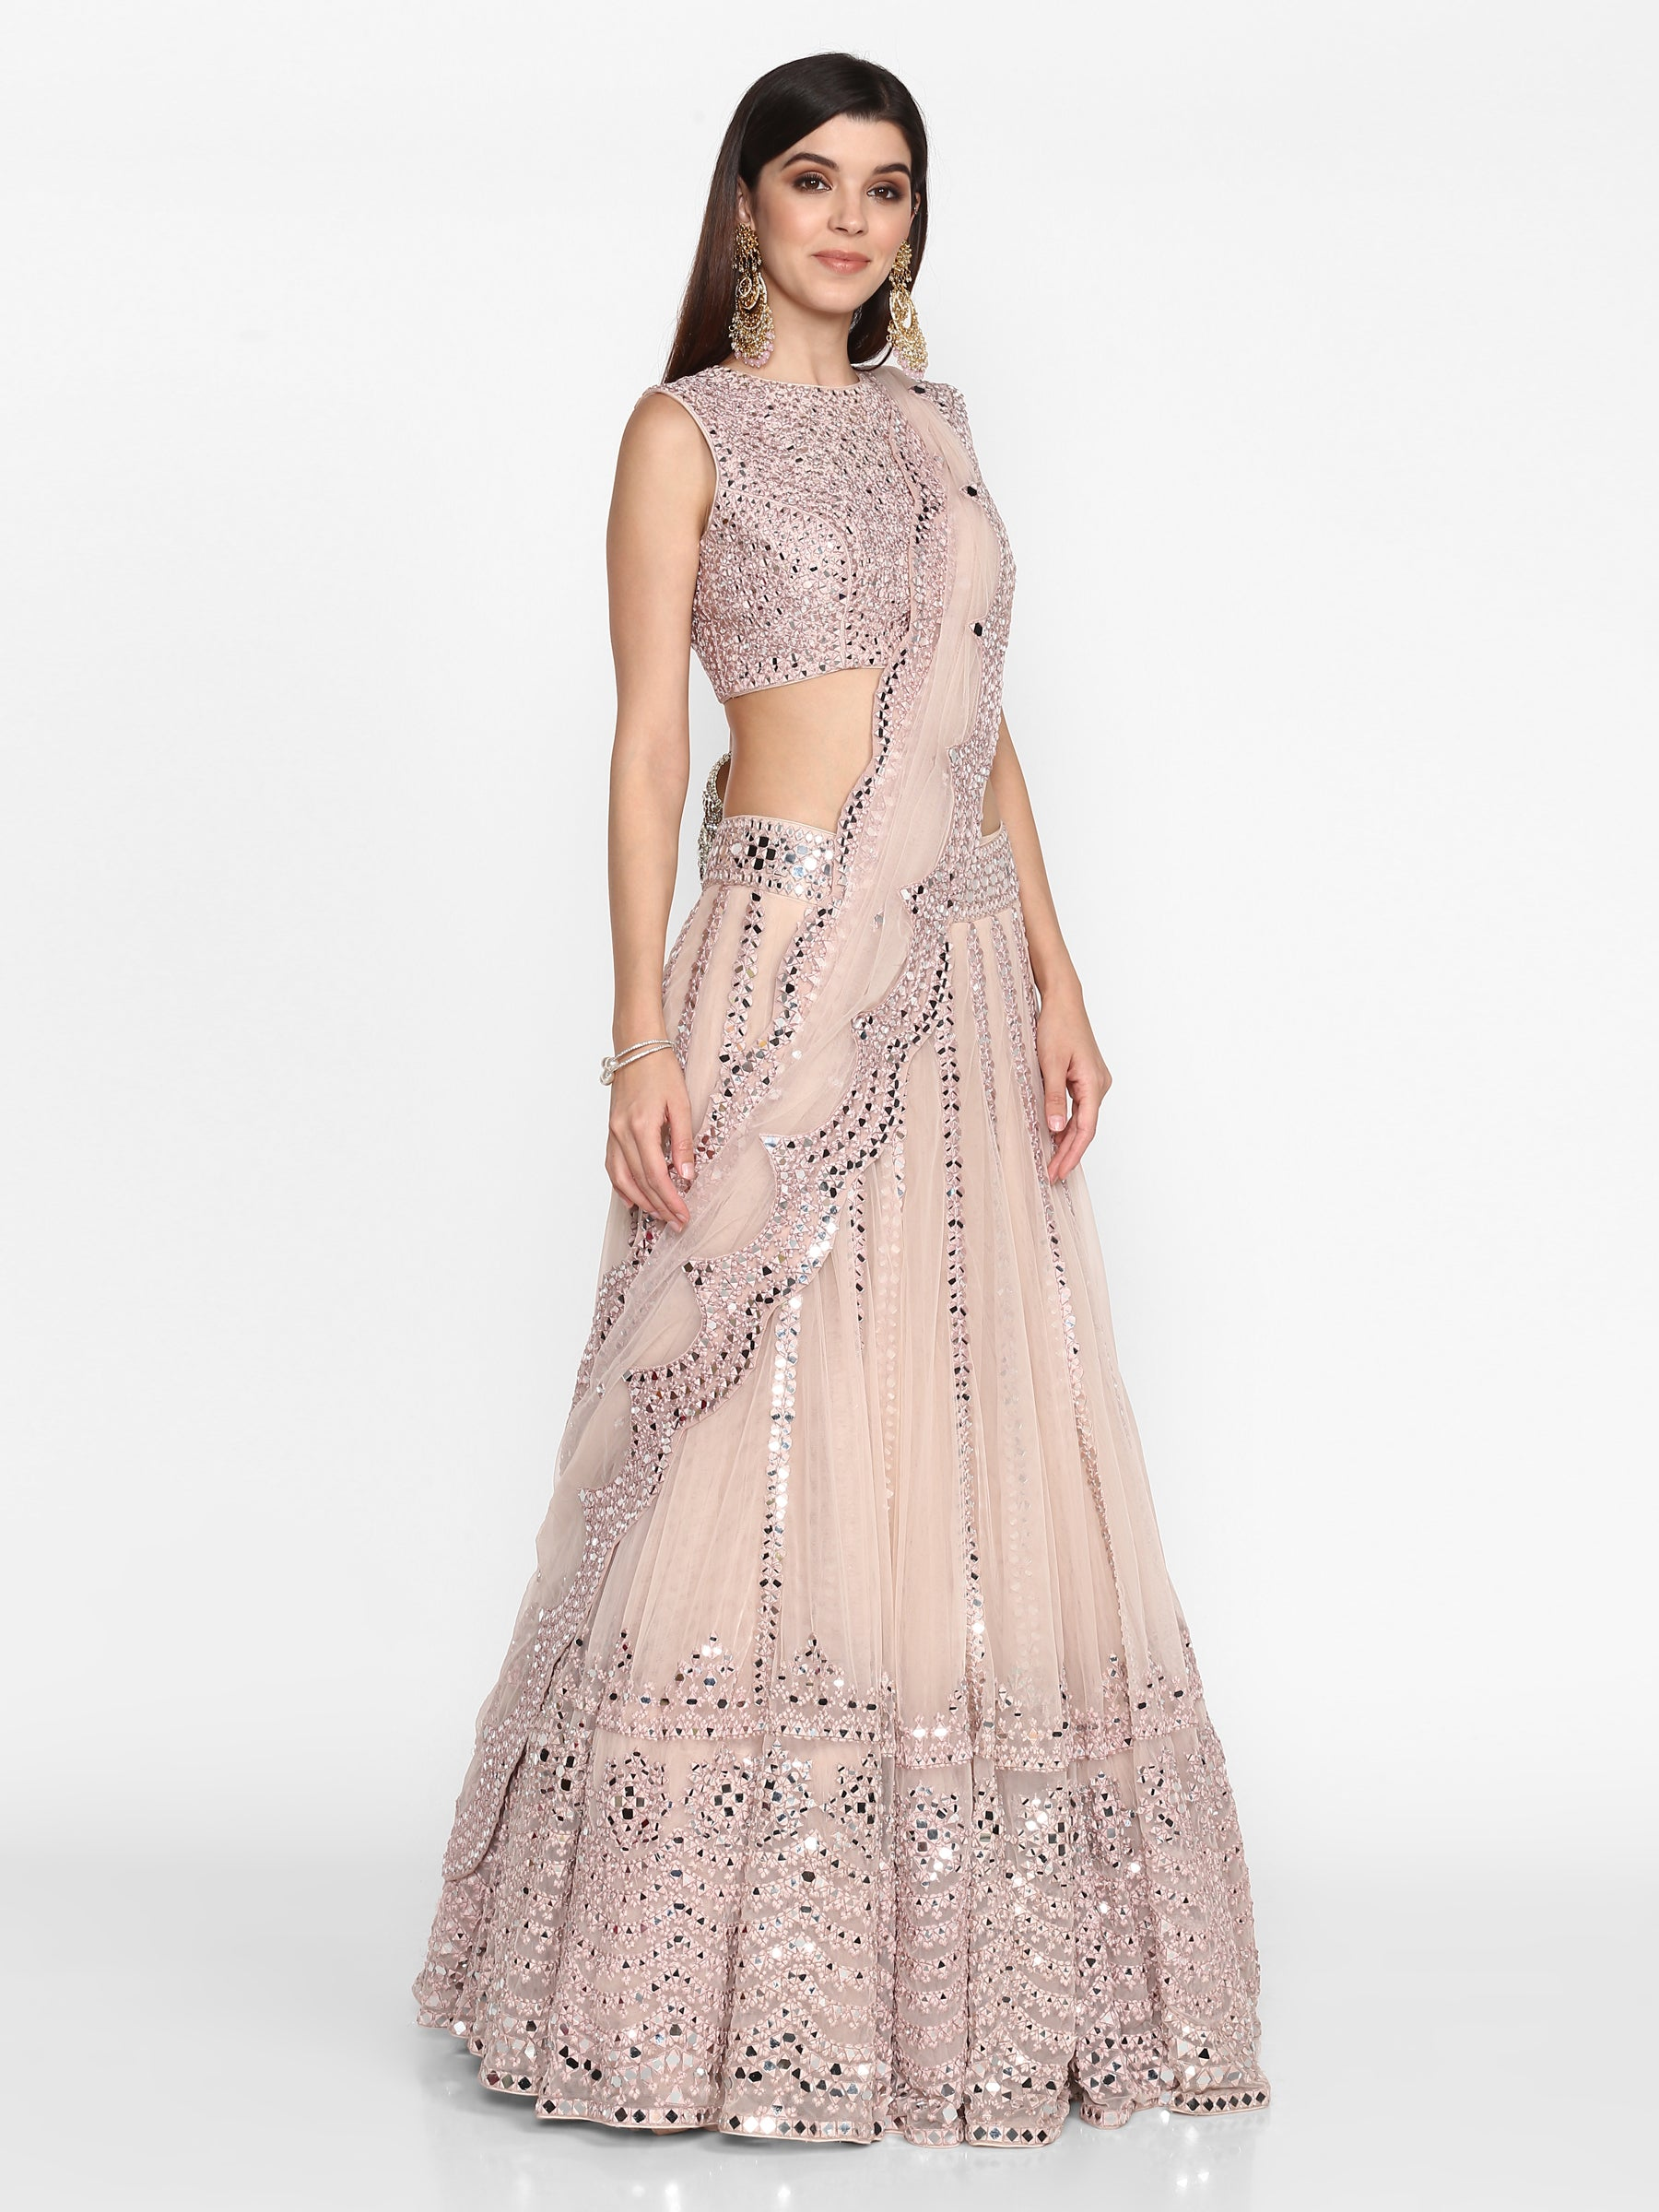 Abhinav Mishra Light Lilac  Lehenga Set - The Grand Trunk